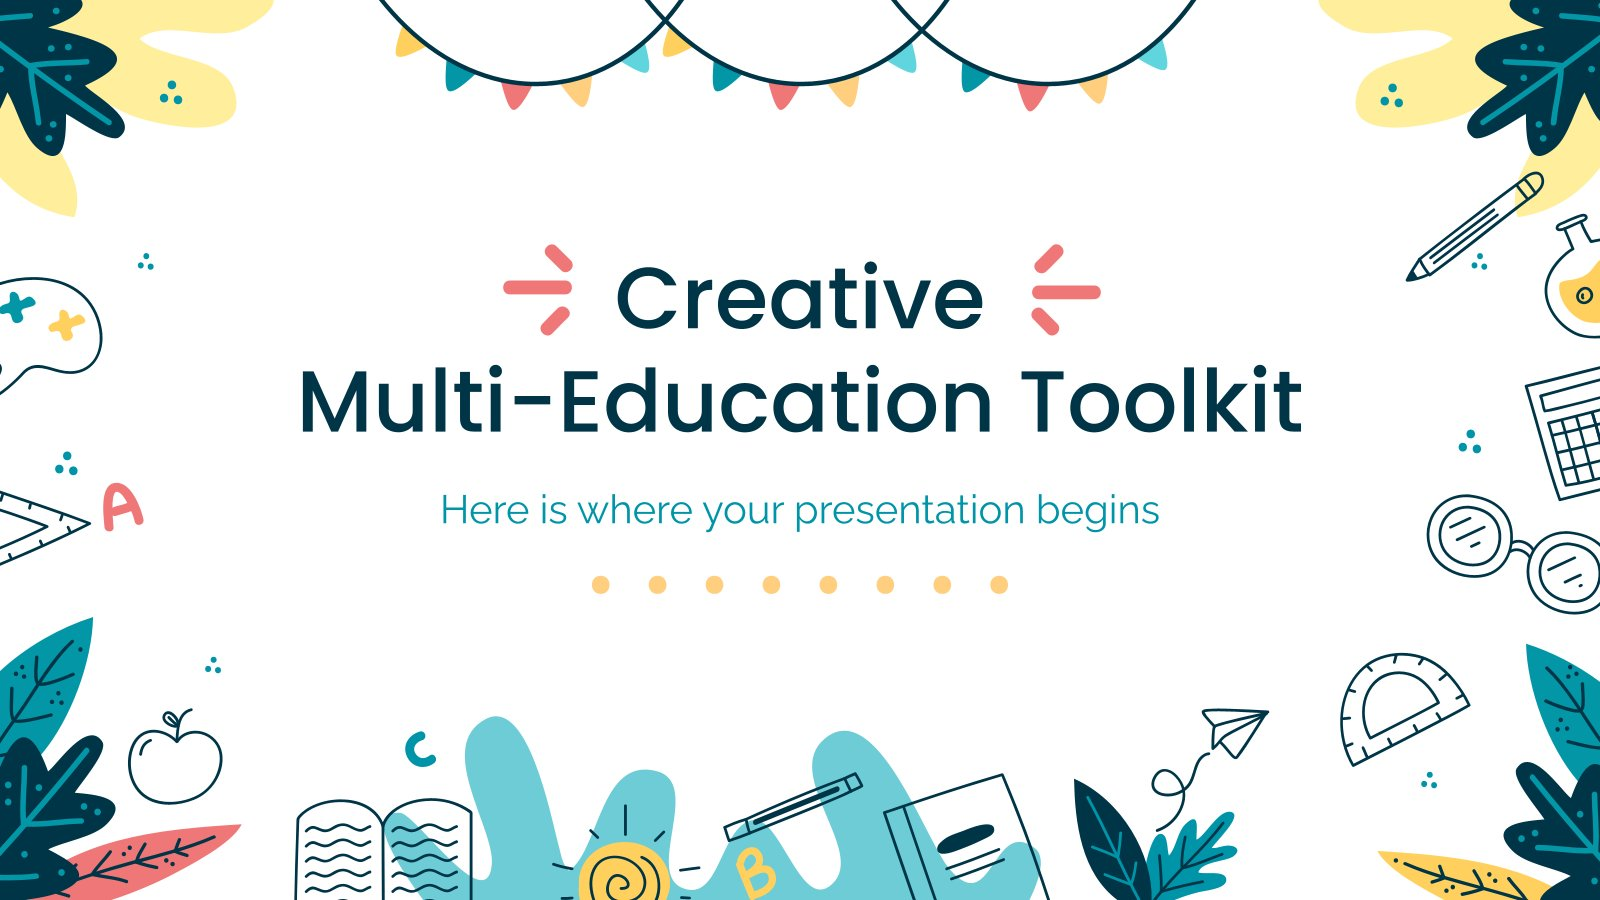 Creative Multi-Education Toolkit presentation template